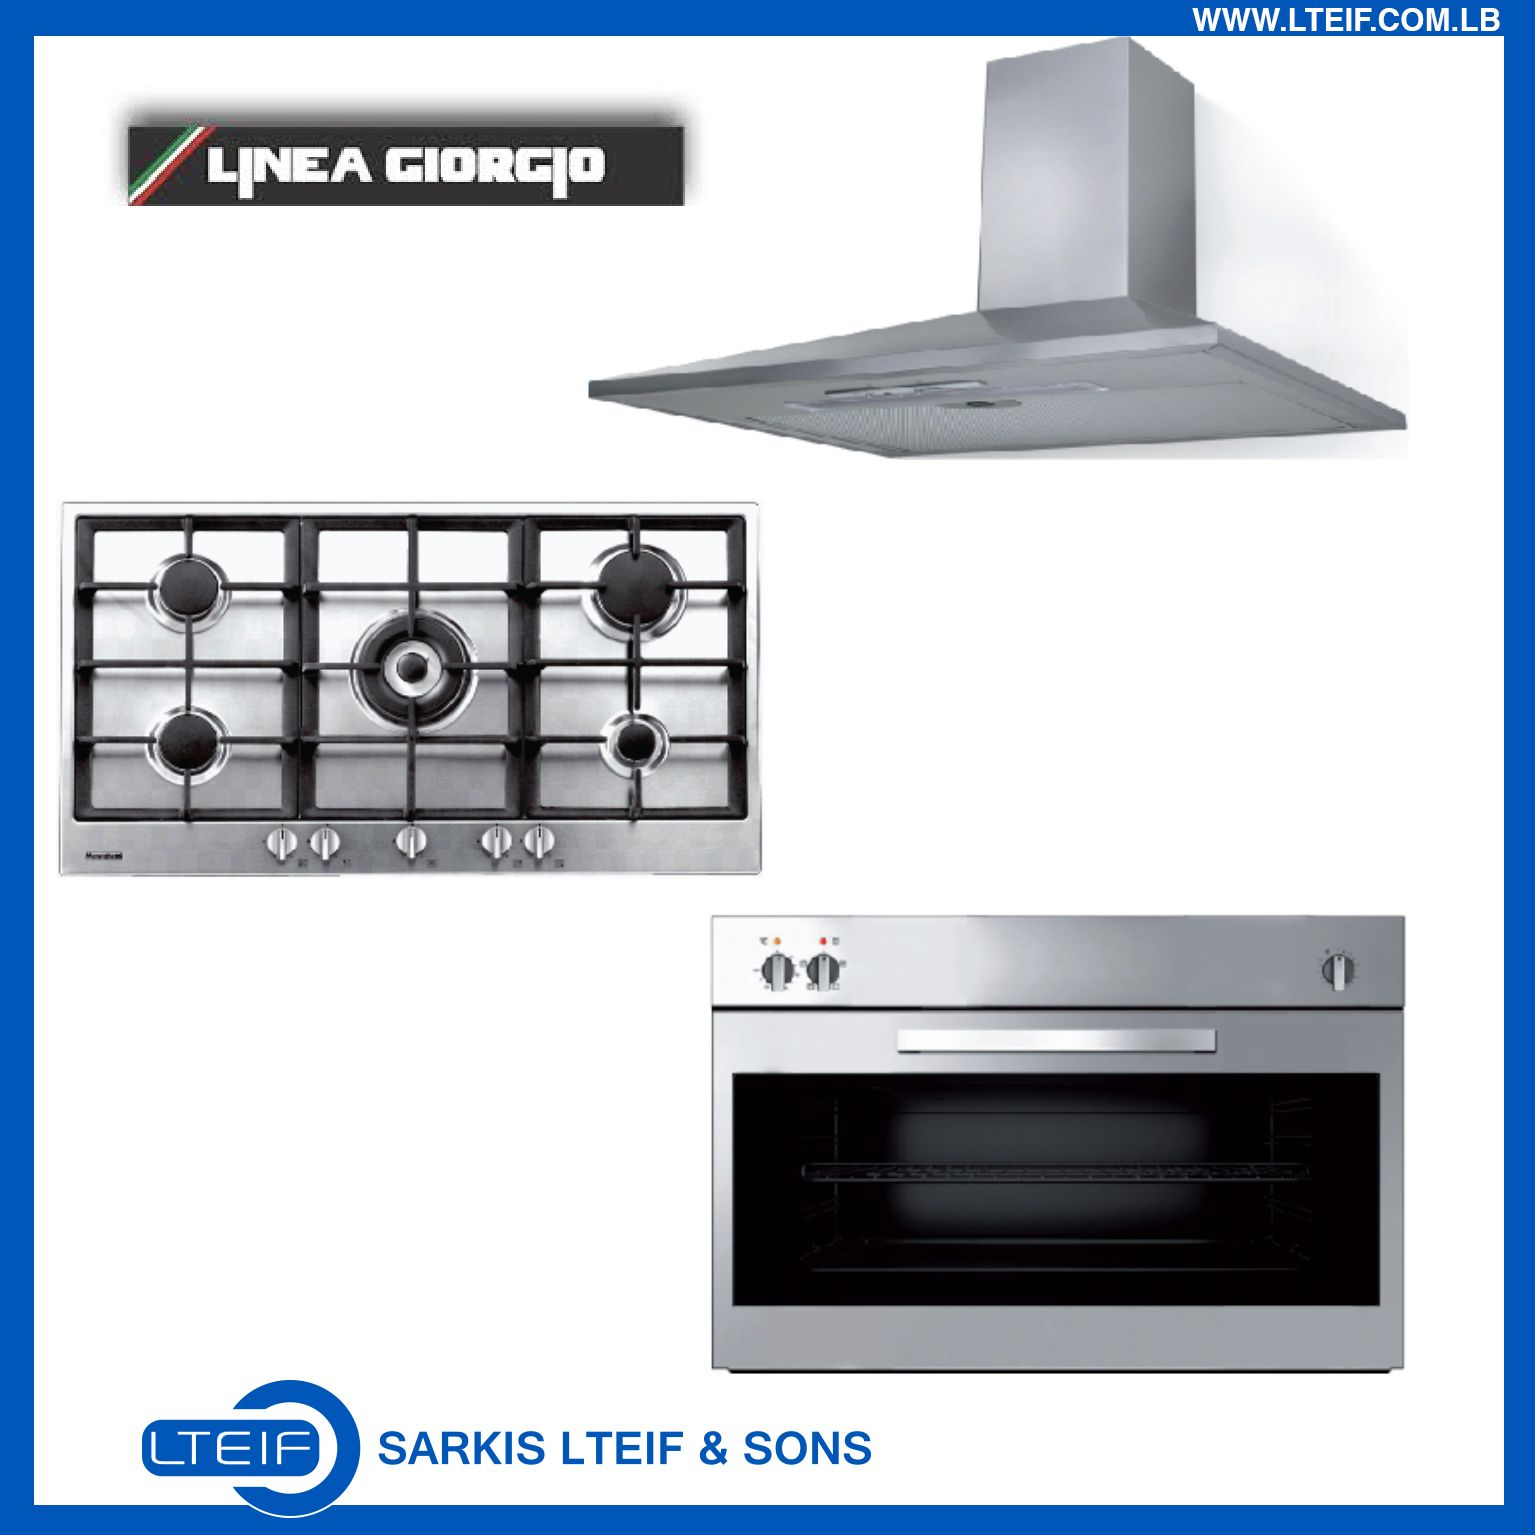 linea giorgio 90cm hood top and oven for 1599 ttc only products